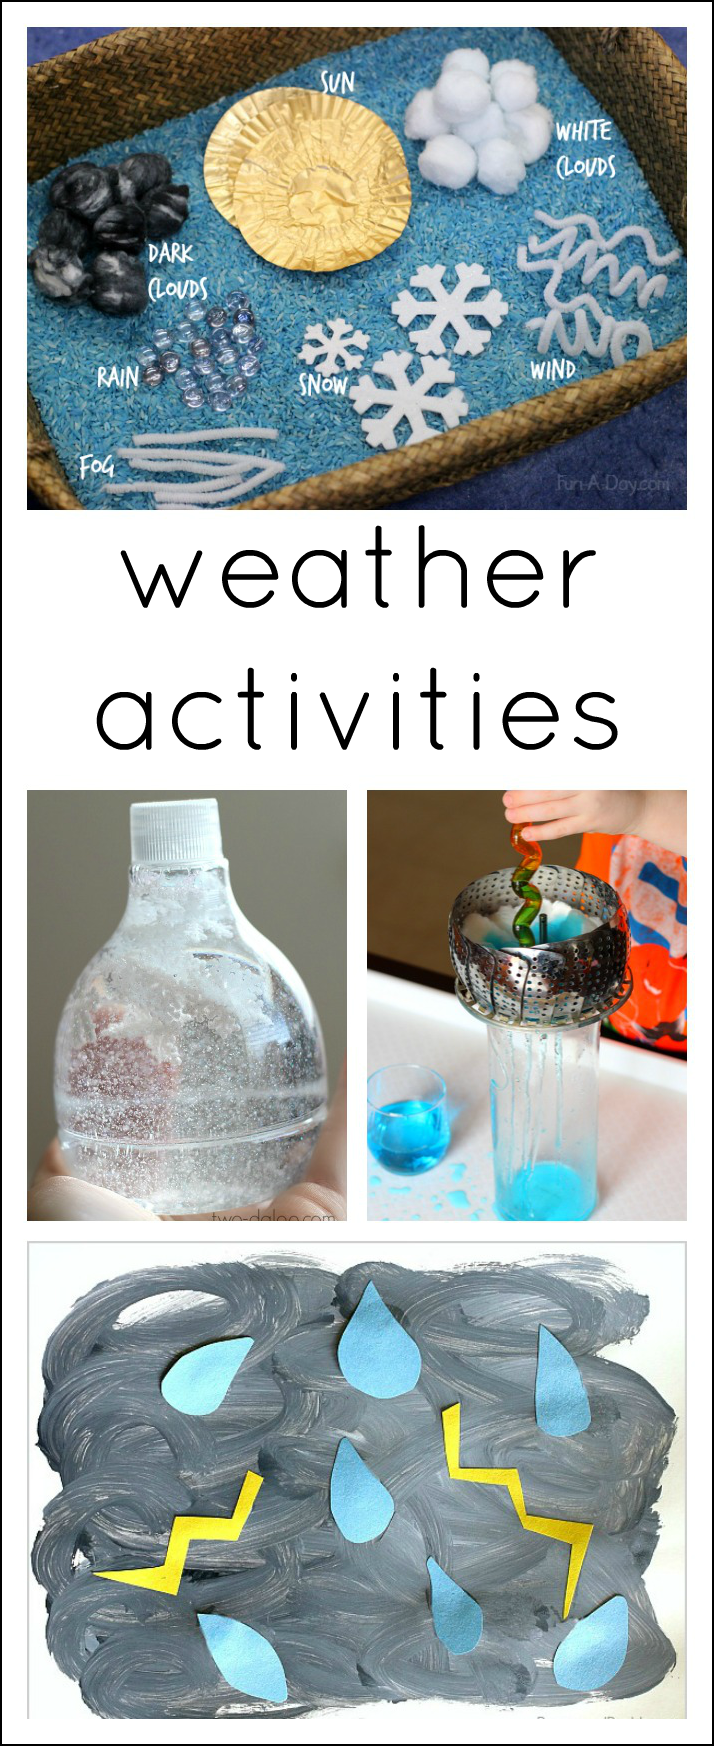 25+ Awesome Ideas You'll Love for Your Preschool Weather